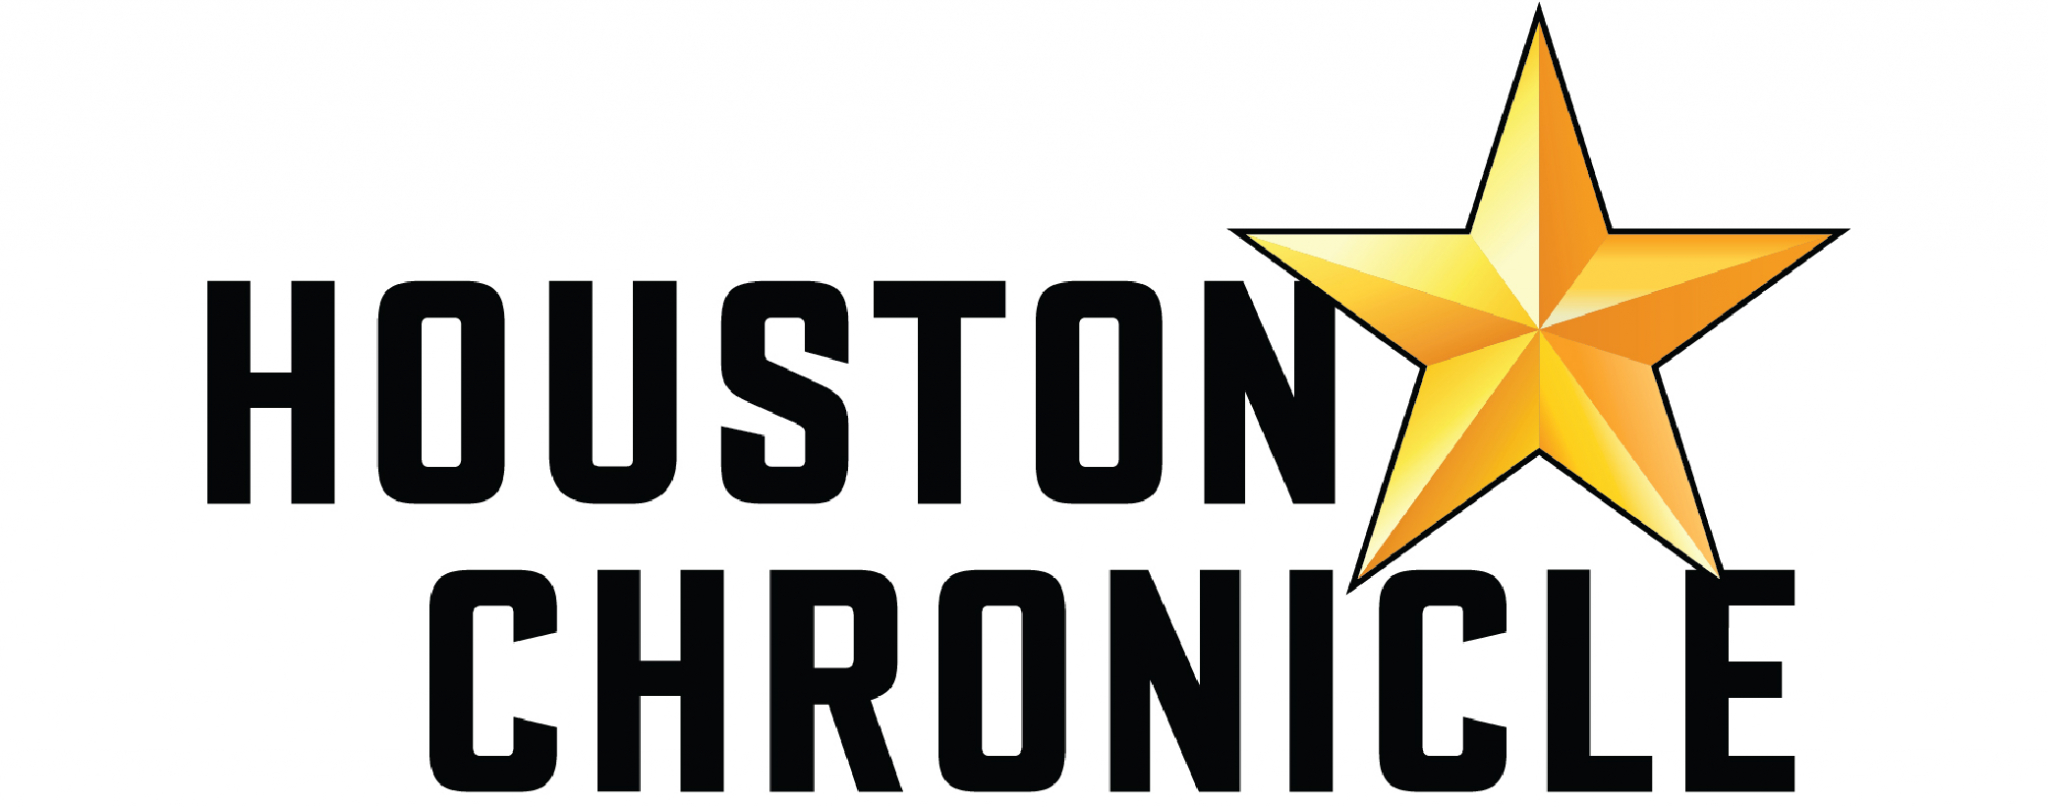 Following investigation, Houston Chronicle retracts eight stories ...